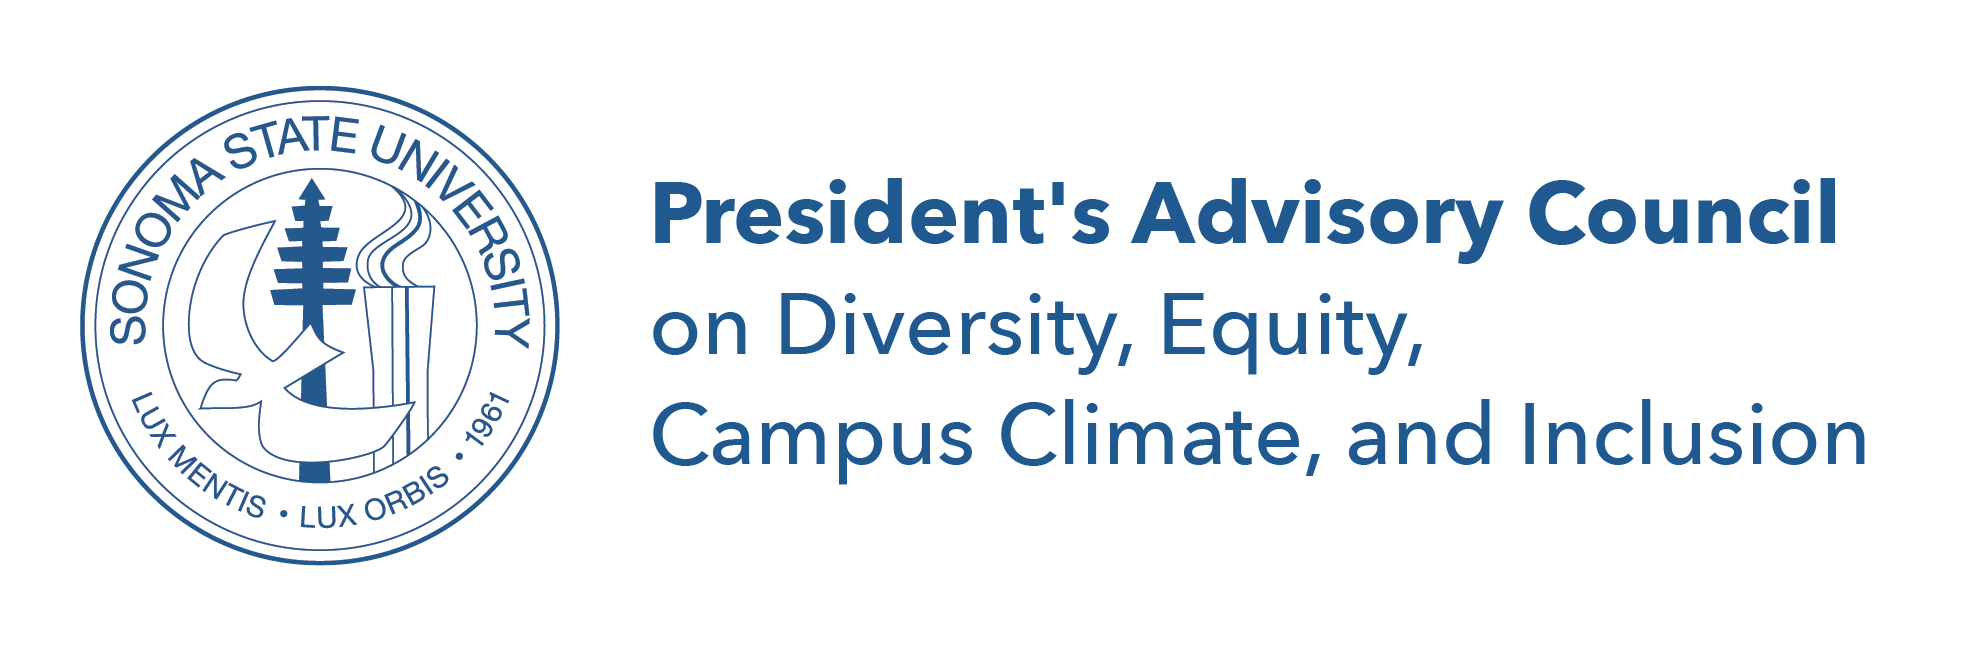 President's Advisory Council on Diversity, Equity, Campus Climate, and Inclusion